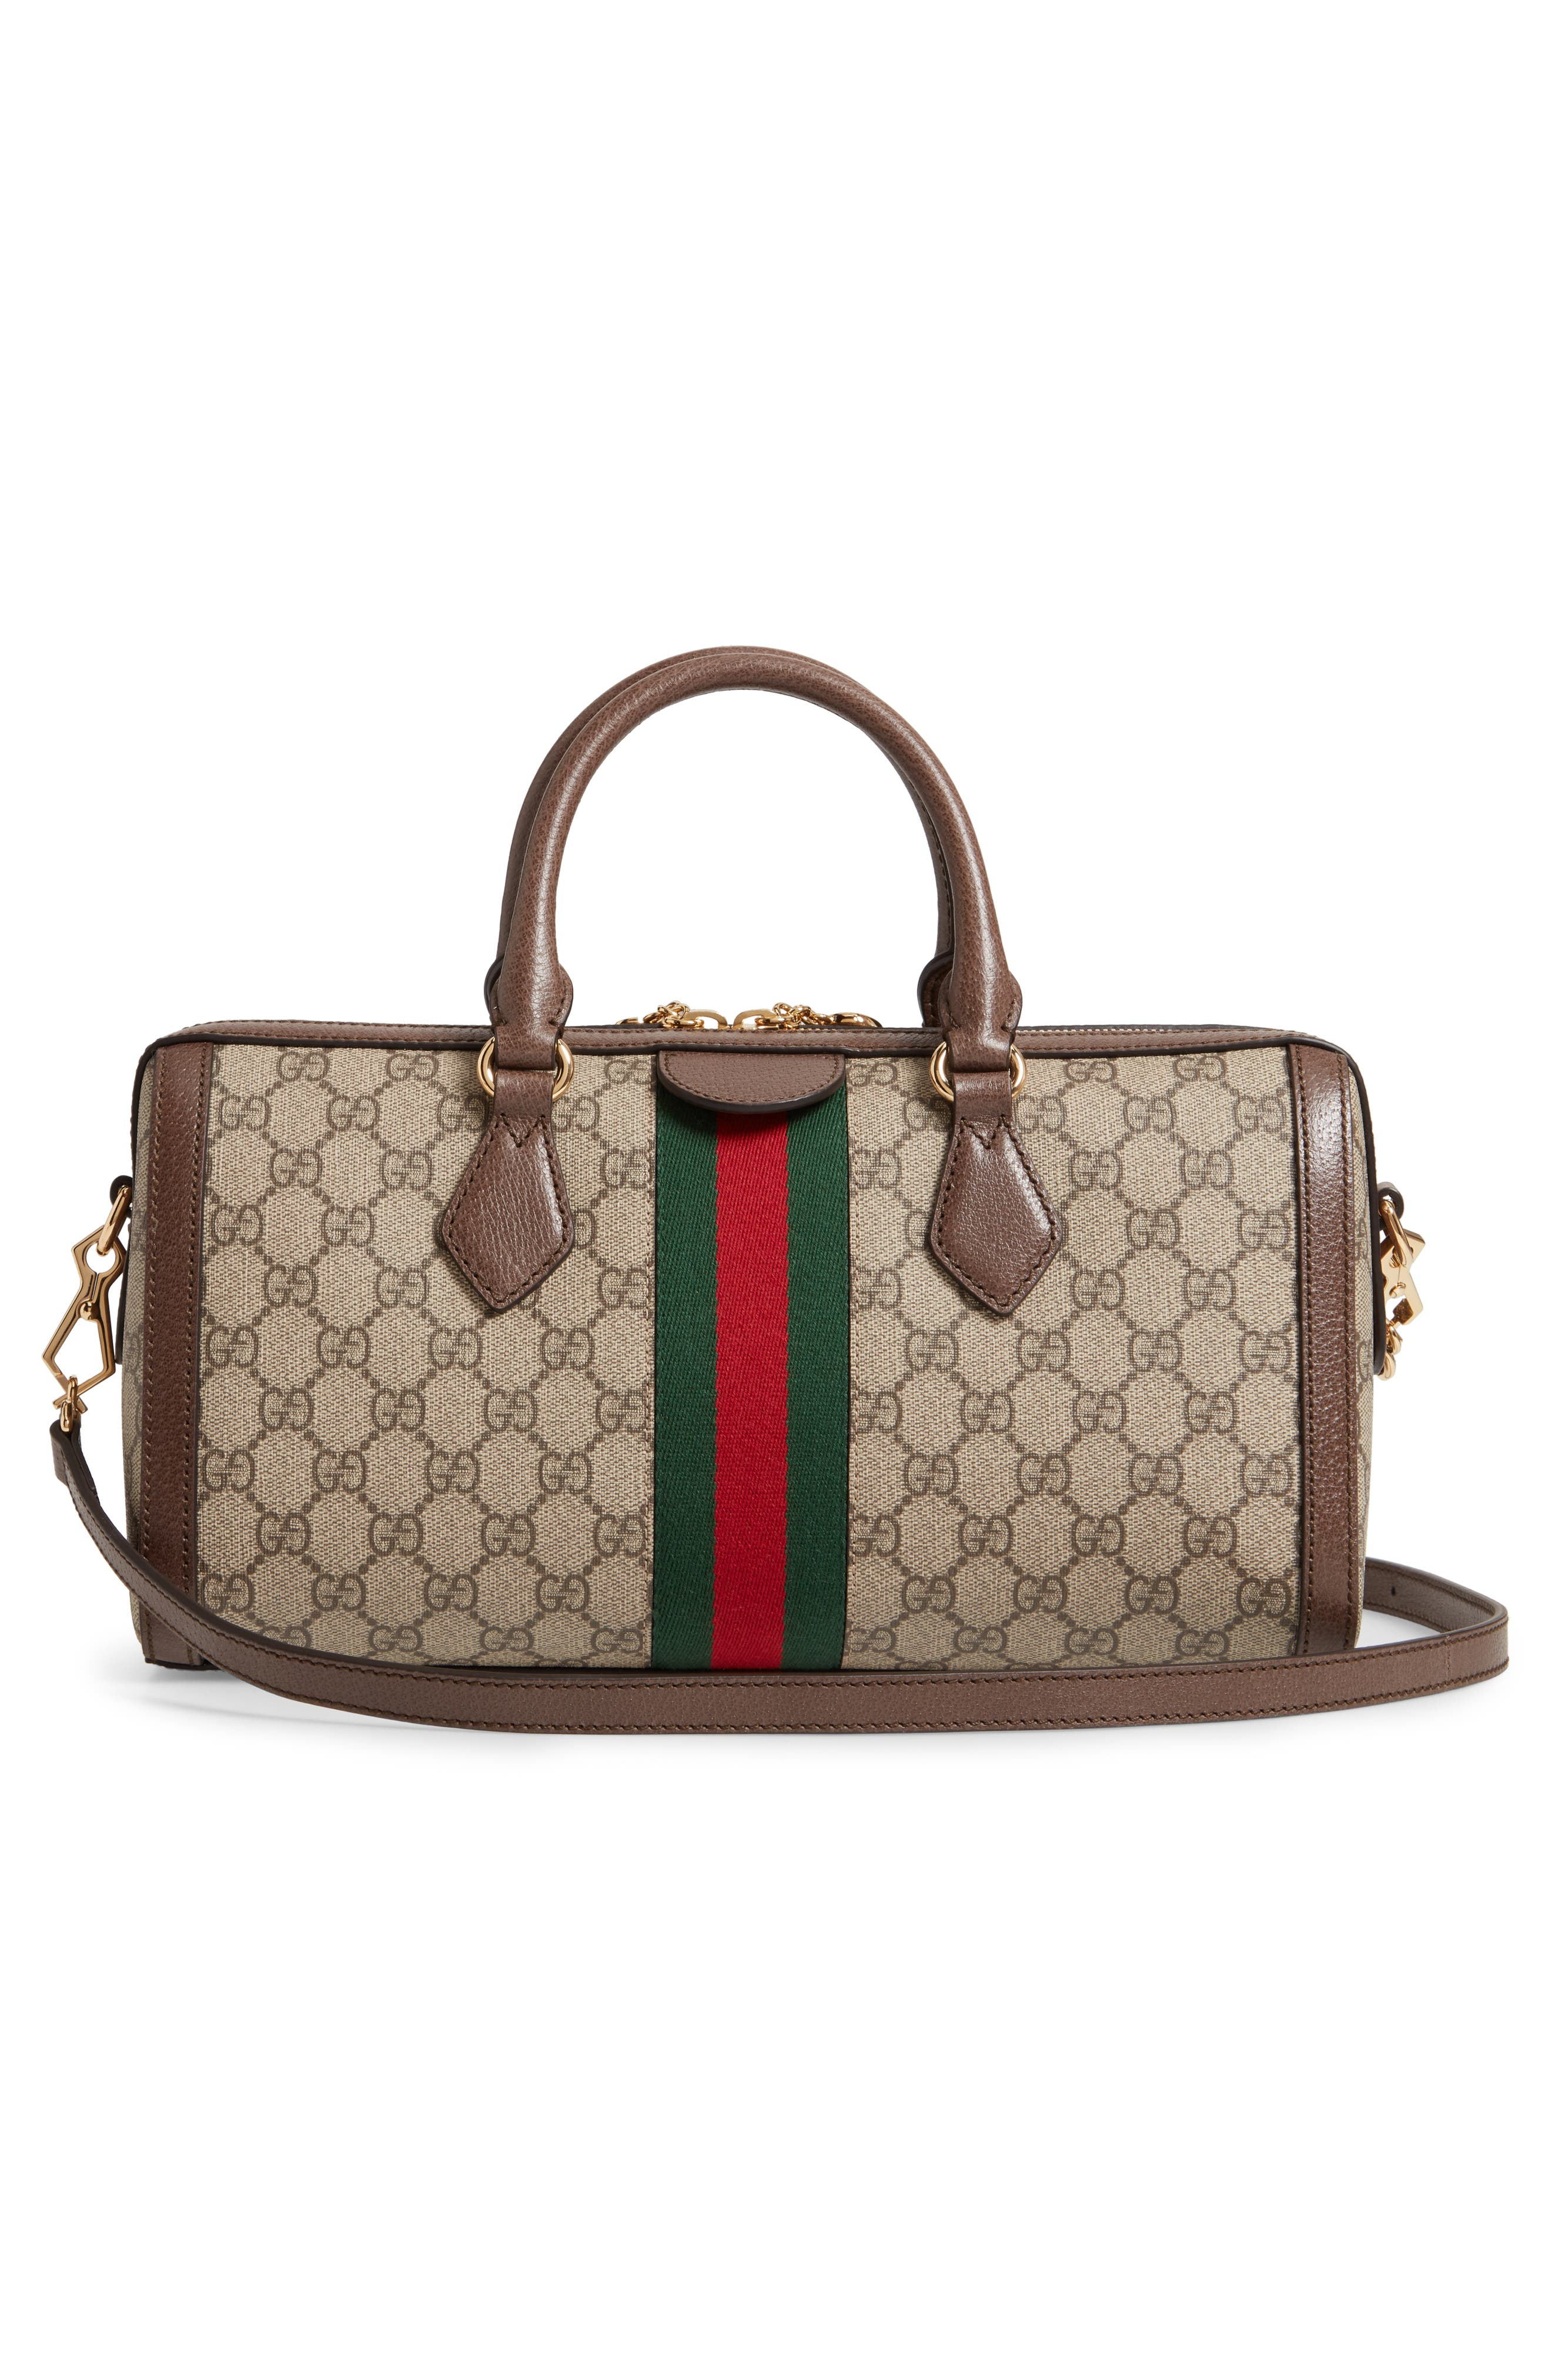 GUCCI, Ophidia GG Supreme Canvas Top Handle Bag, Alternate thumbnail 3, color, BEIGE EBONY/ ACERO/ VERT RED